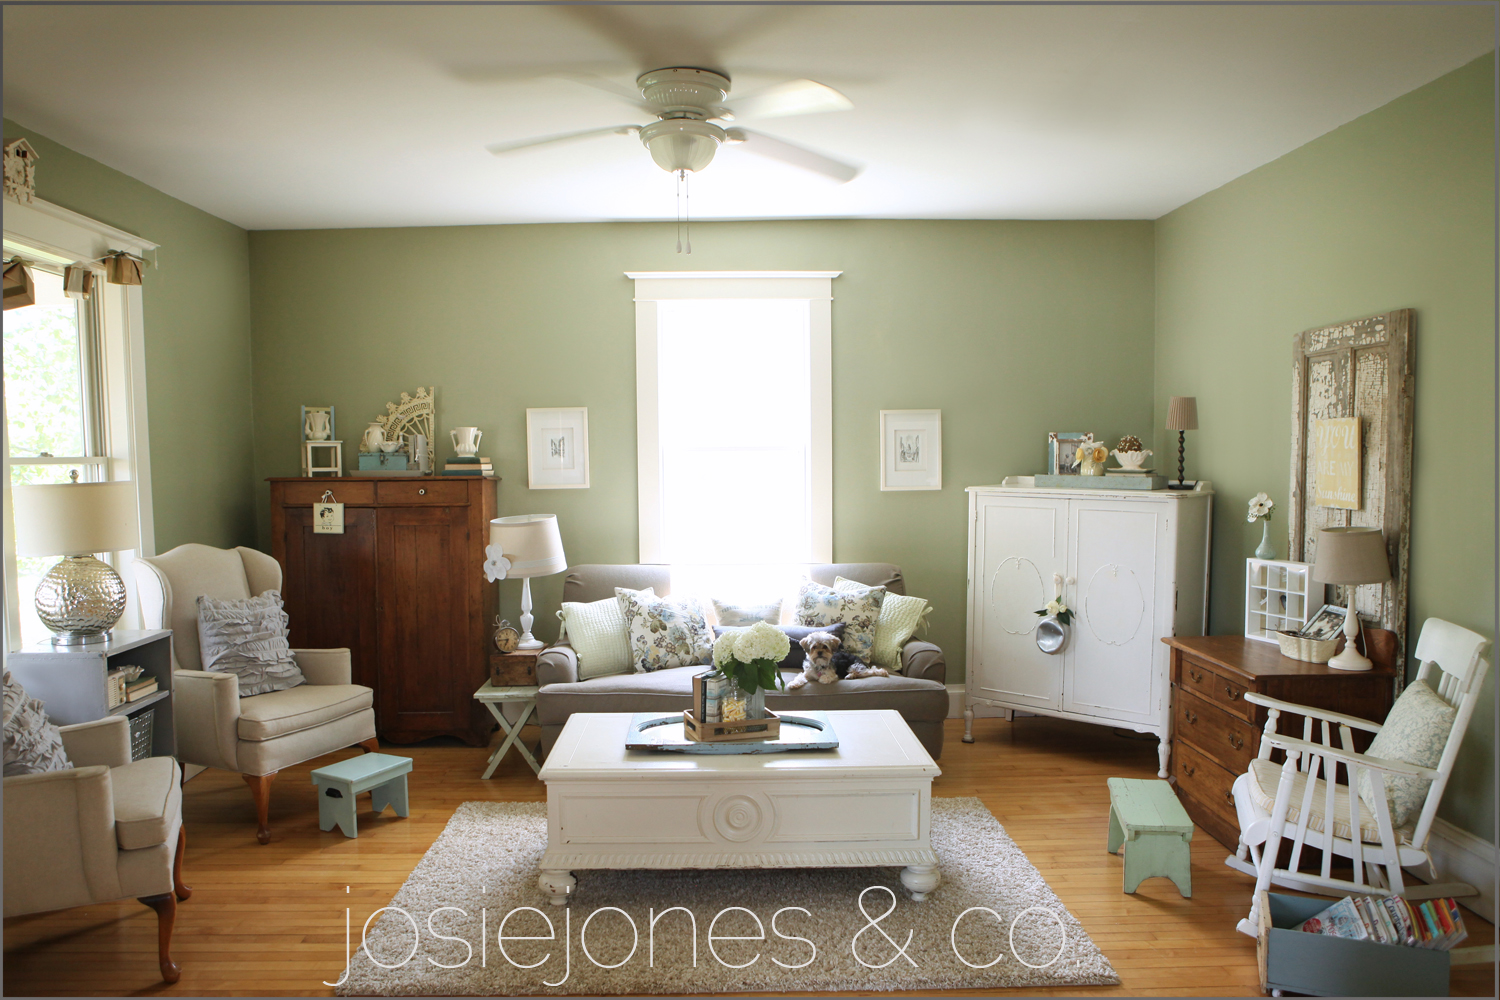 Lincoln's Retreat…A Boy's Room » JosieJones & Company